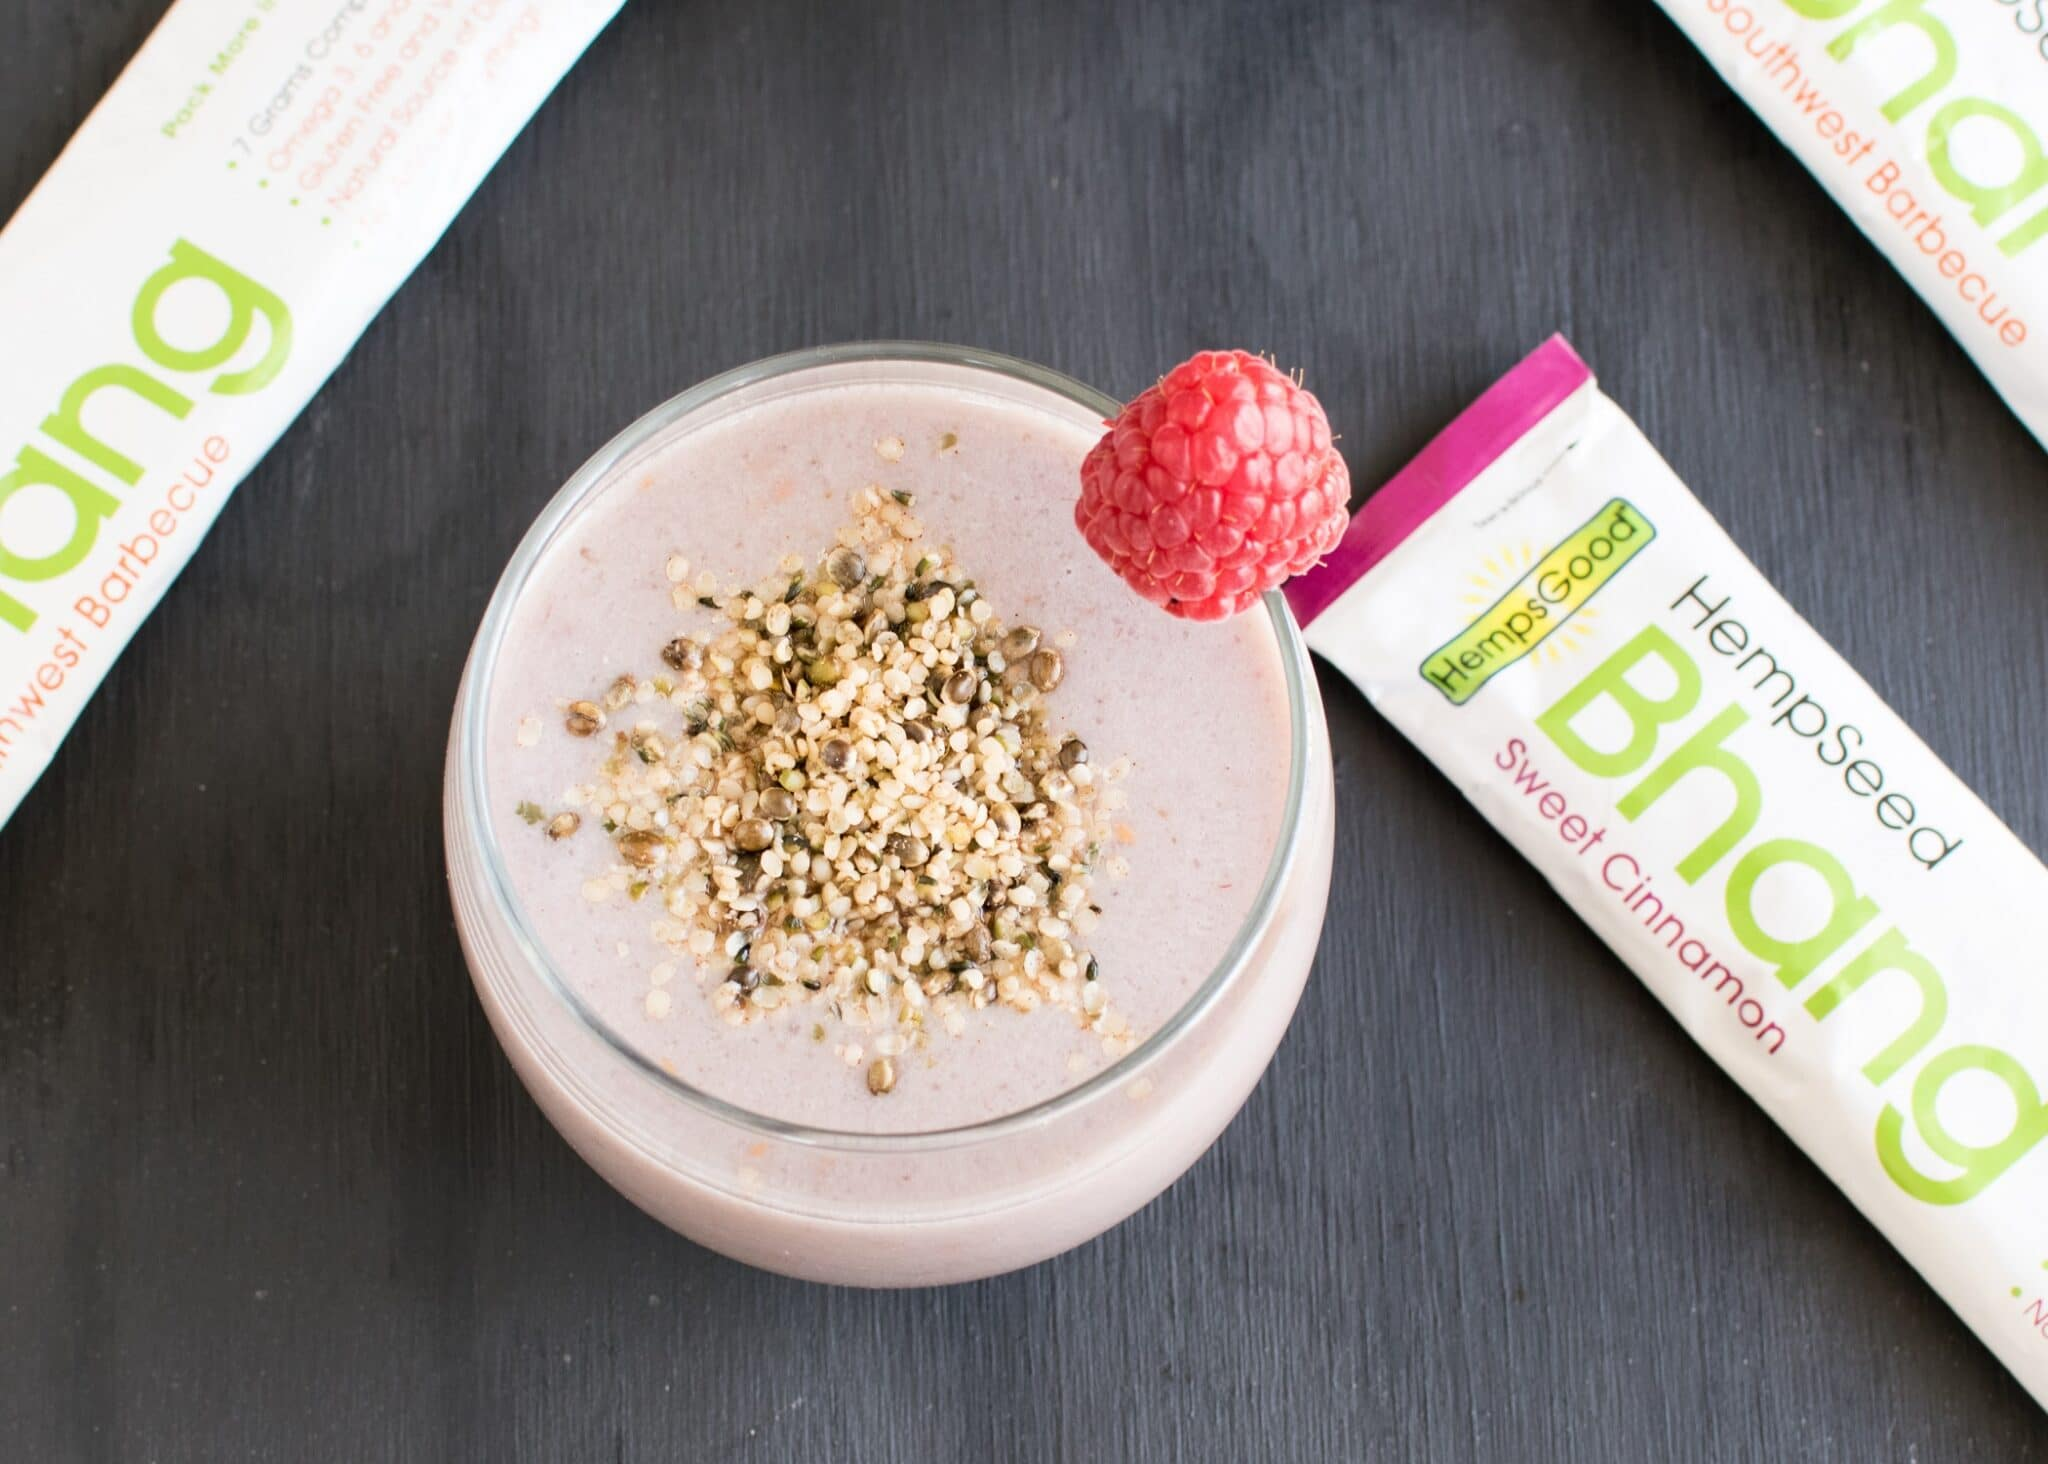 ... for a better after workout snack with complete and balanced nutrition